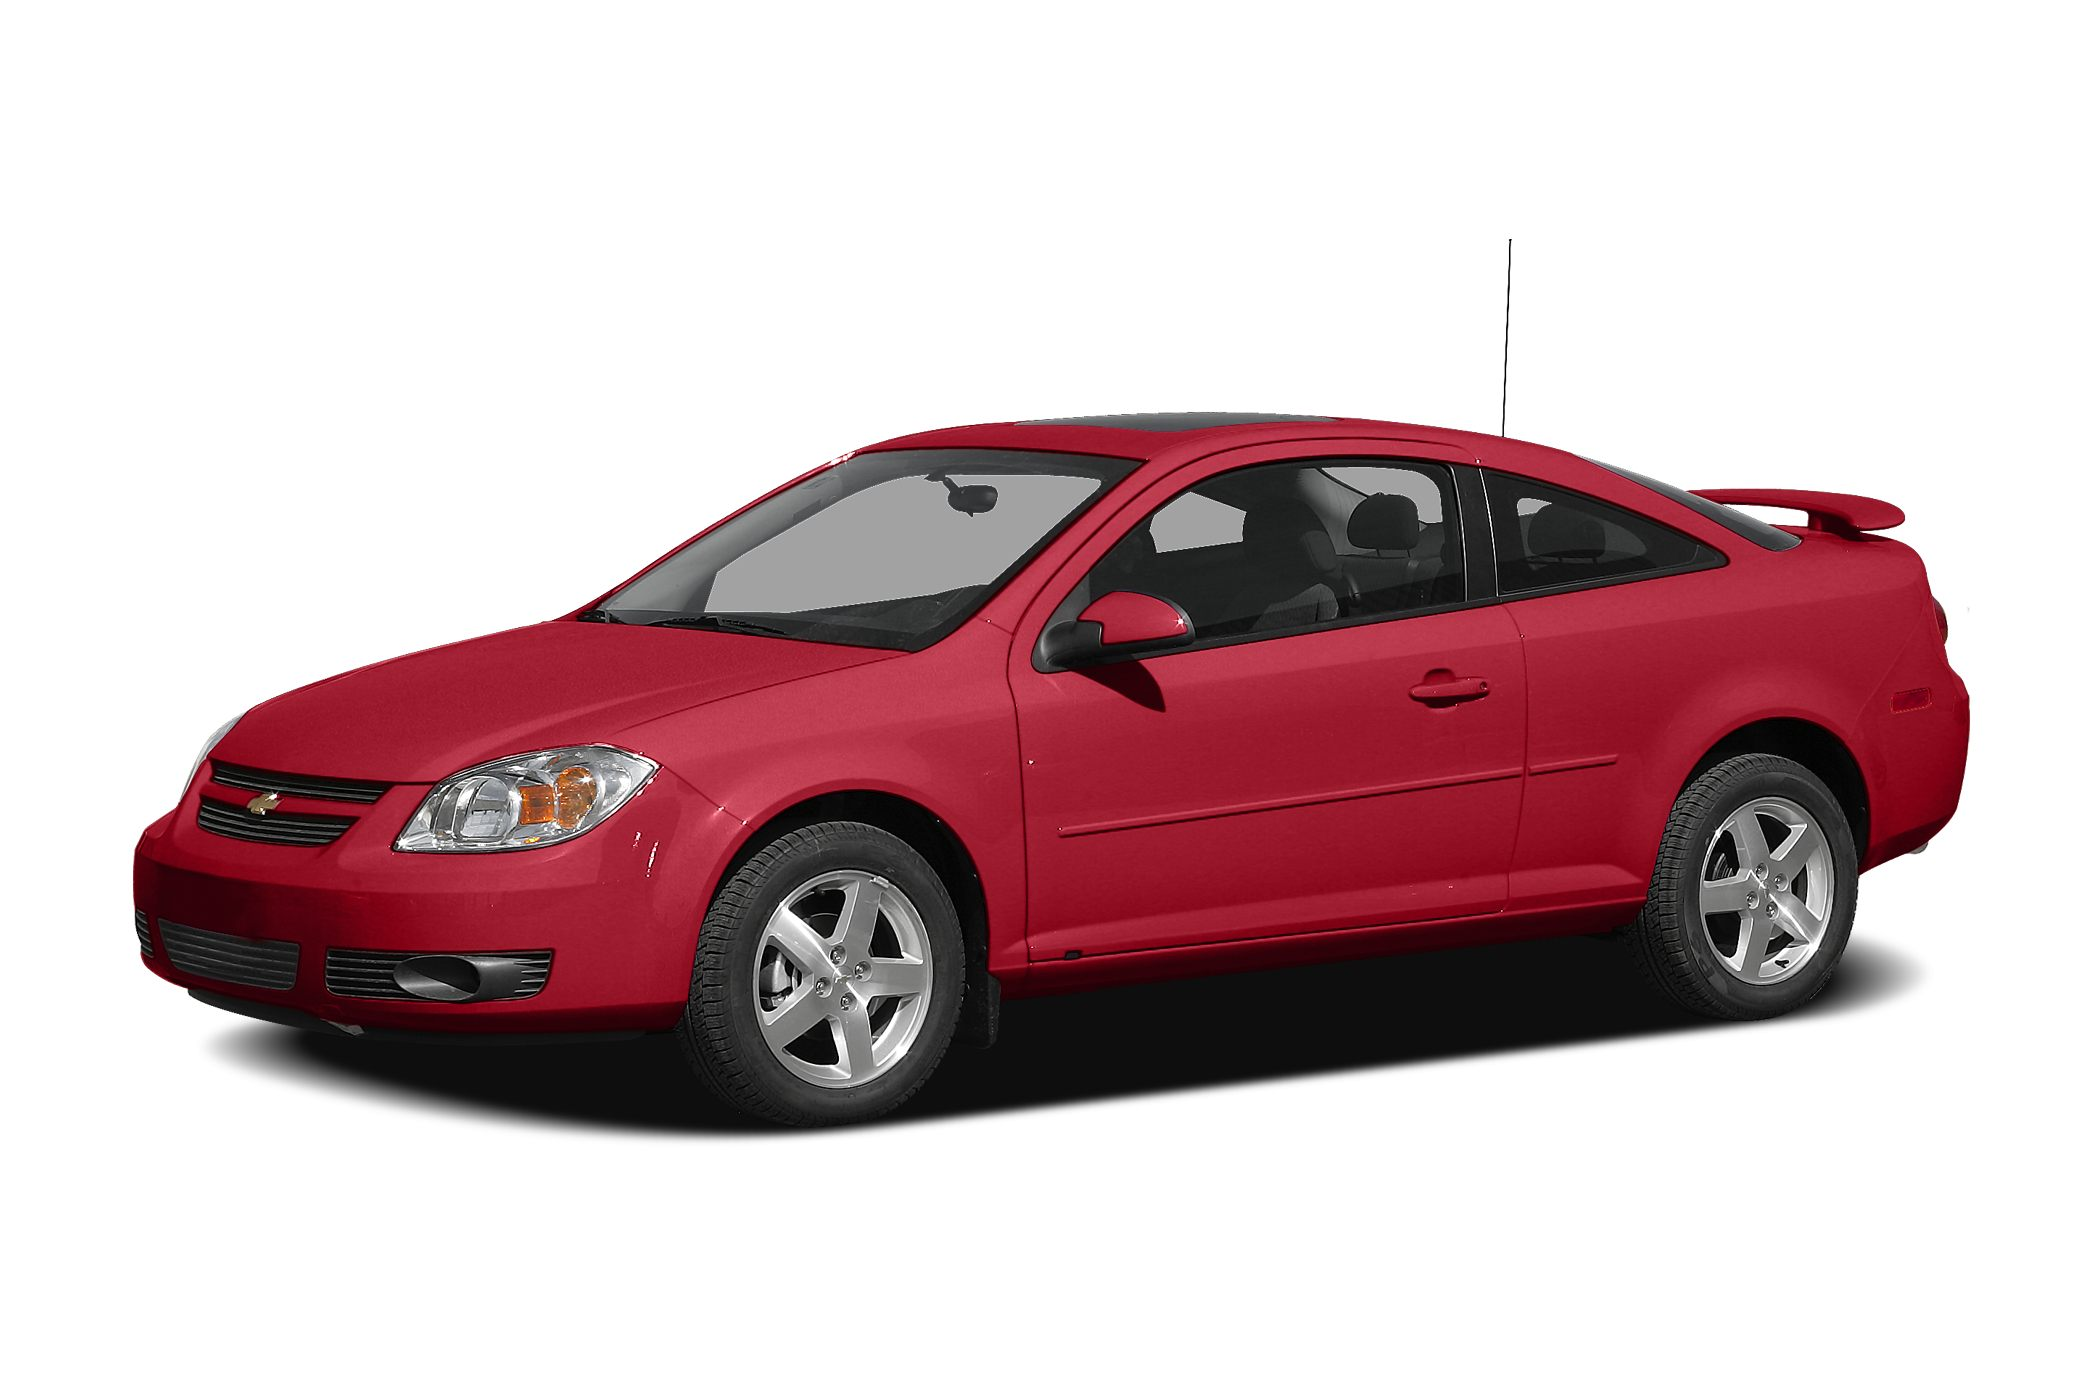 2008 Chevrolet Cobalt LS Sedan for sale in Pine Bluff for $0 with 134,482 miles